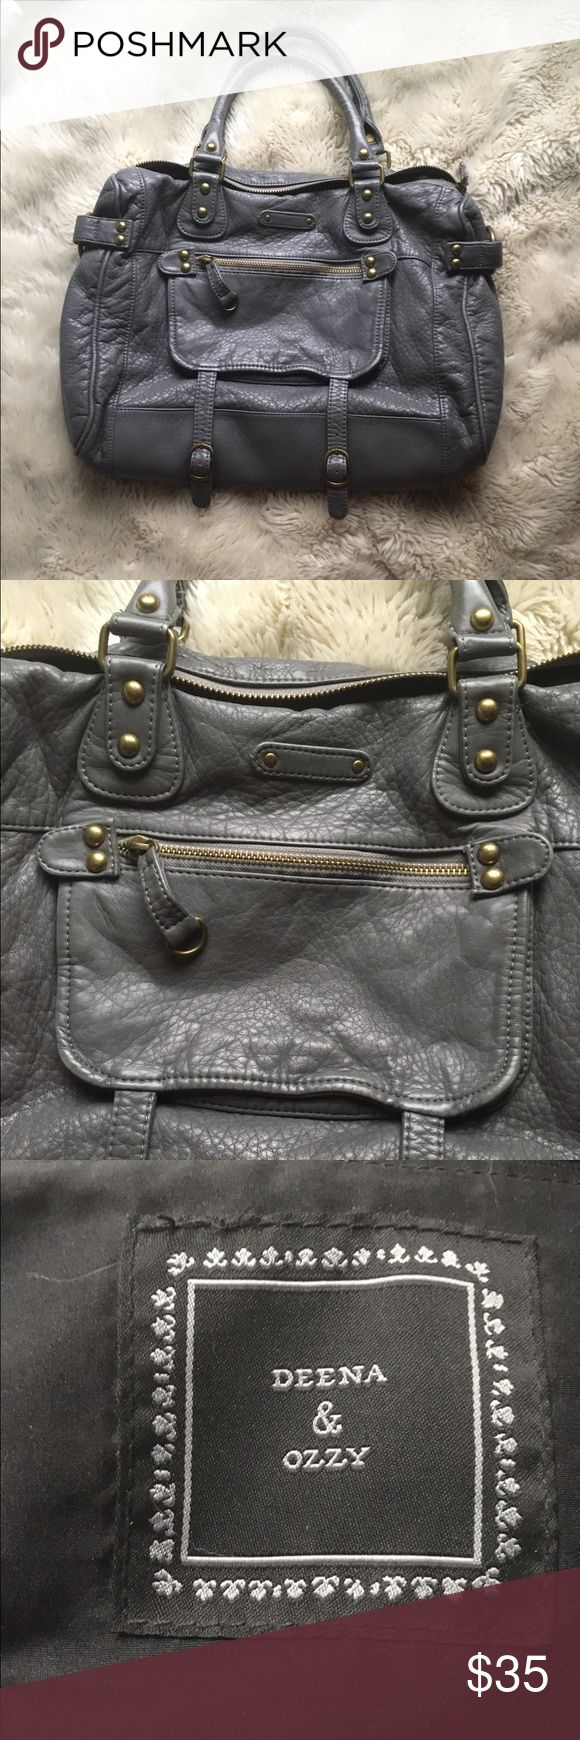 "Urban Outfitters grey leather handbag Urban Outfitters grey pebbled leather handbag with gold metal details, motorcycle style bag, ""deena and ozzy"" brand, some use but very good condition, soft leather, $30 Urban Outfitters Bags Hobos"